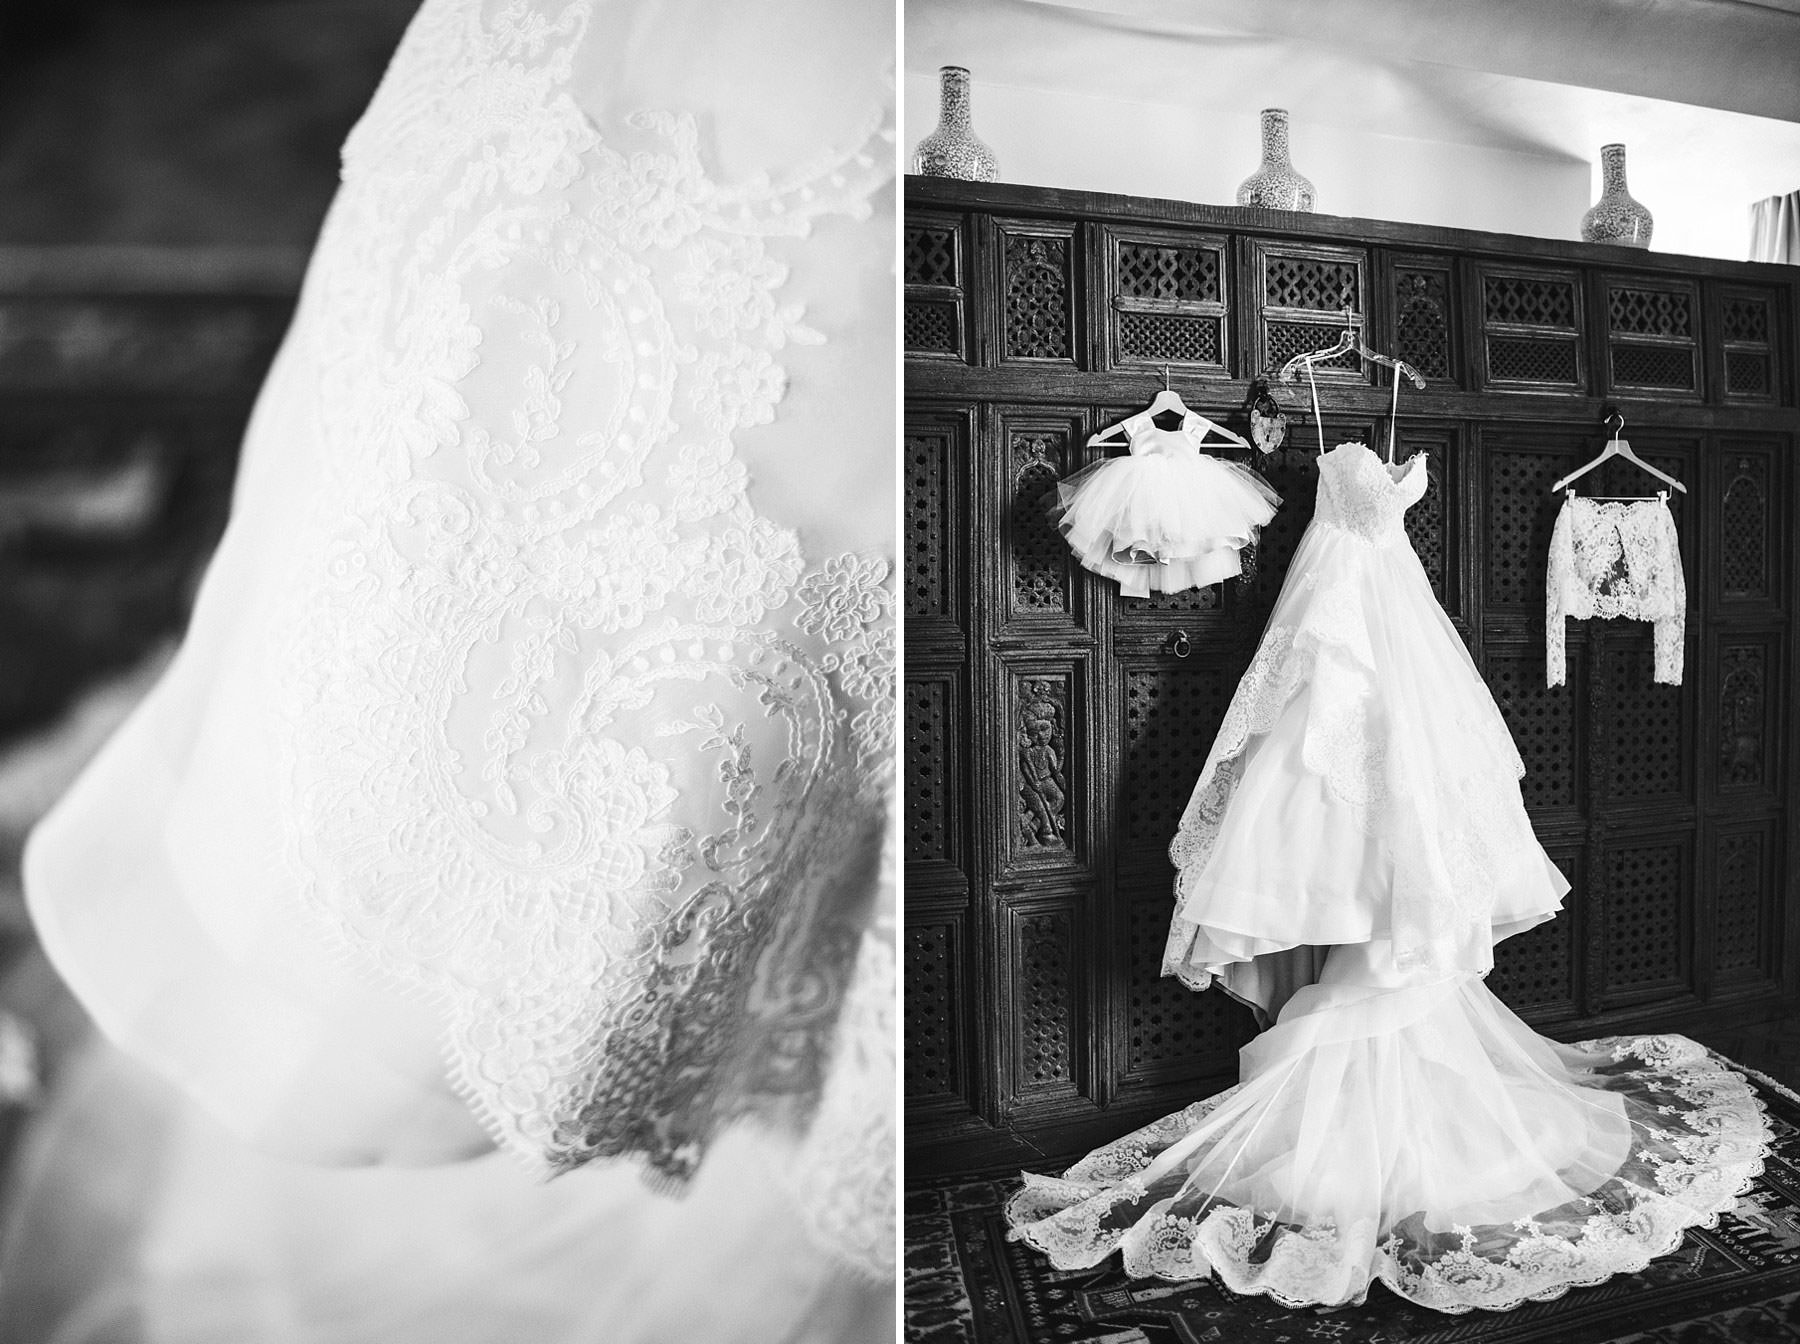 Gorgeous bridal wedding gown by Justin Alexander. Elegant destination wedding in Chianti at Villa Mangiacane